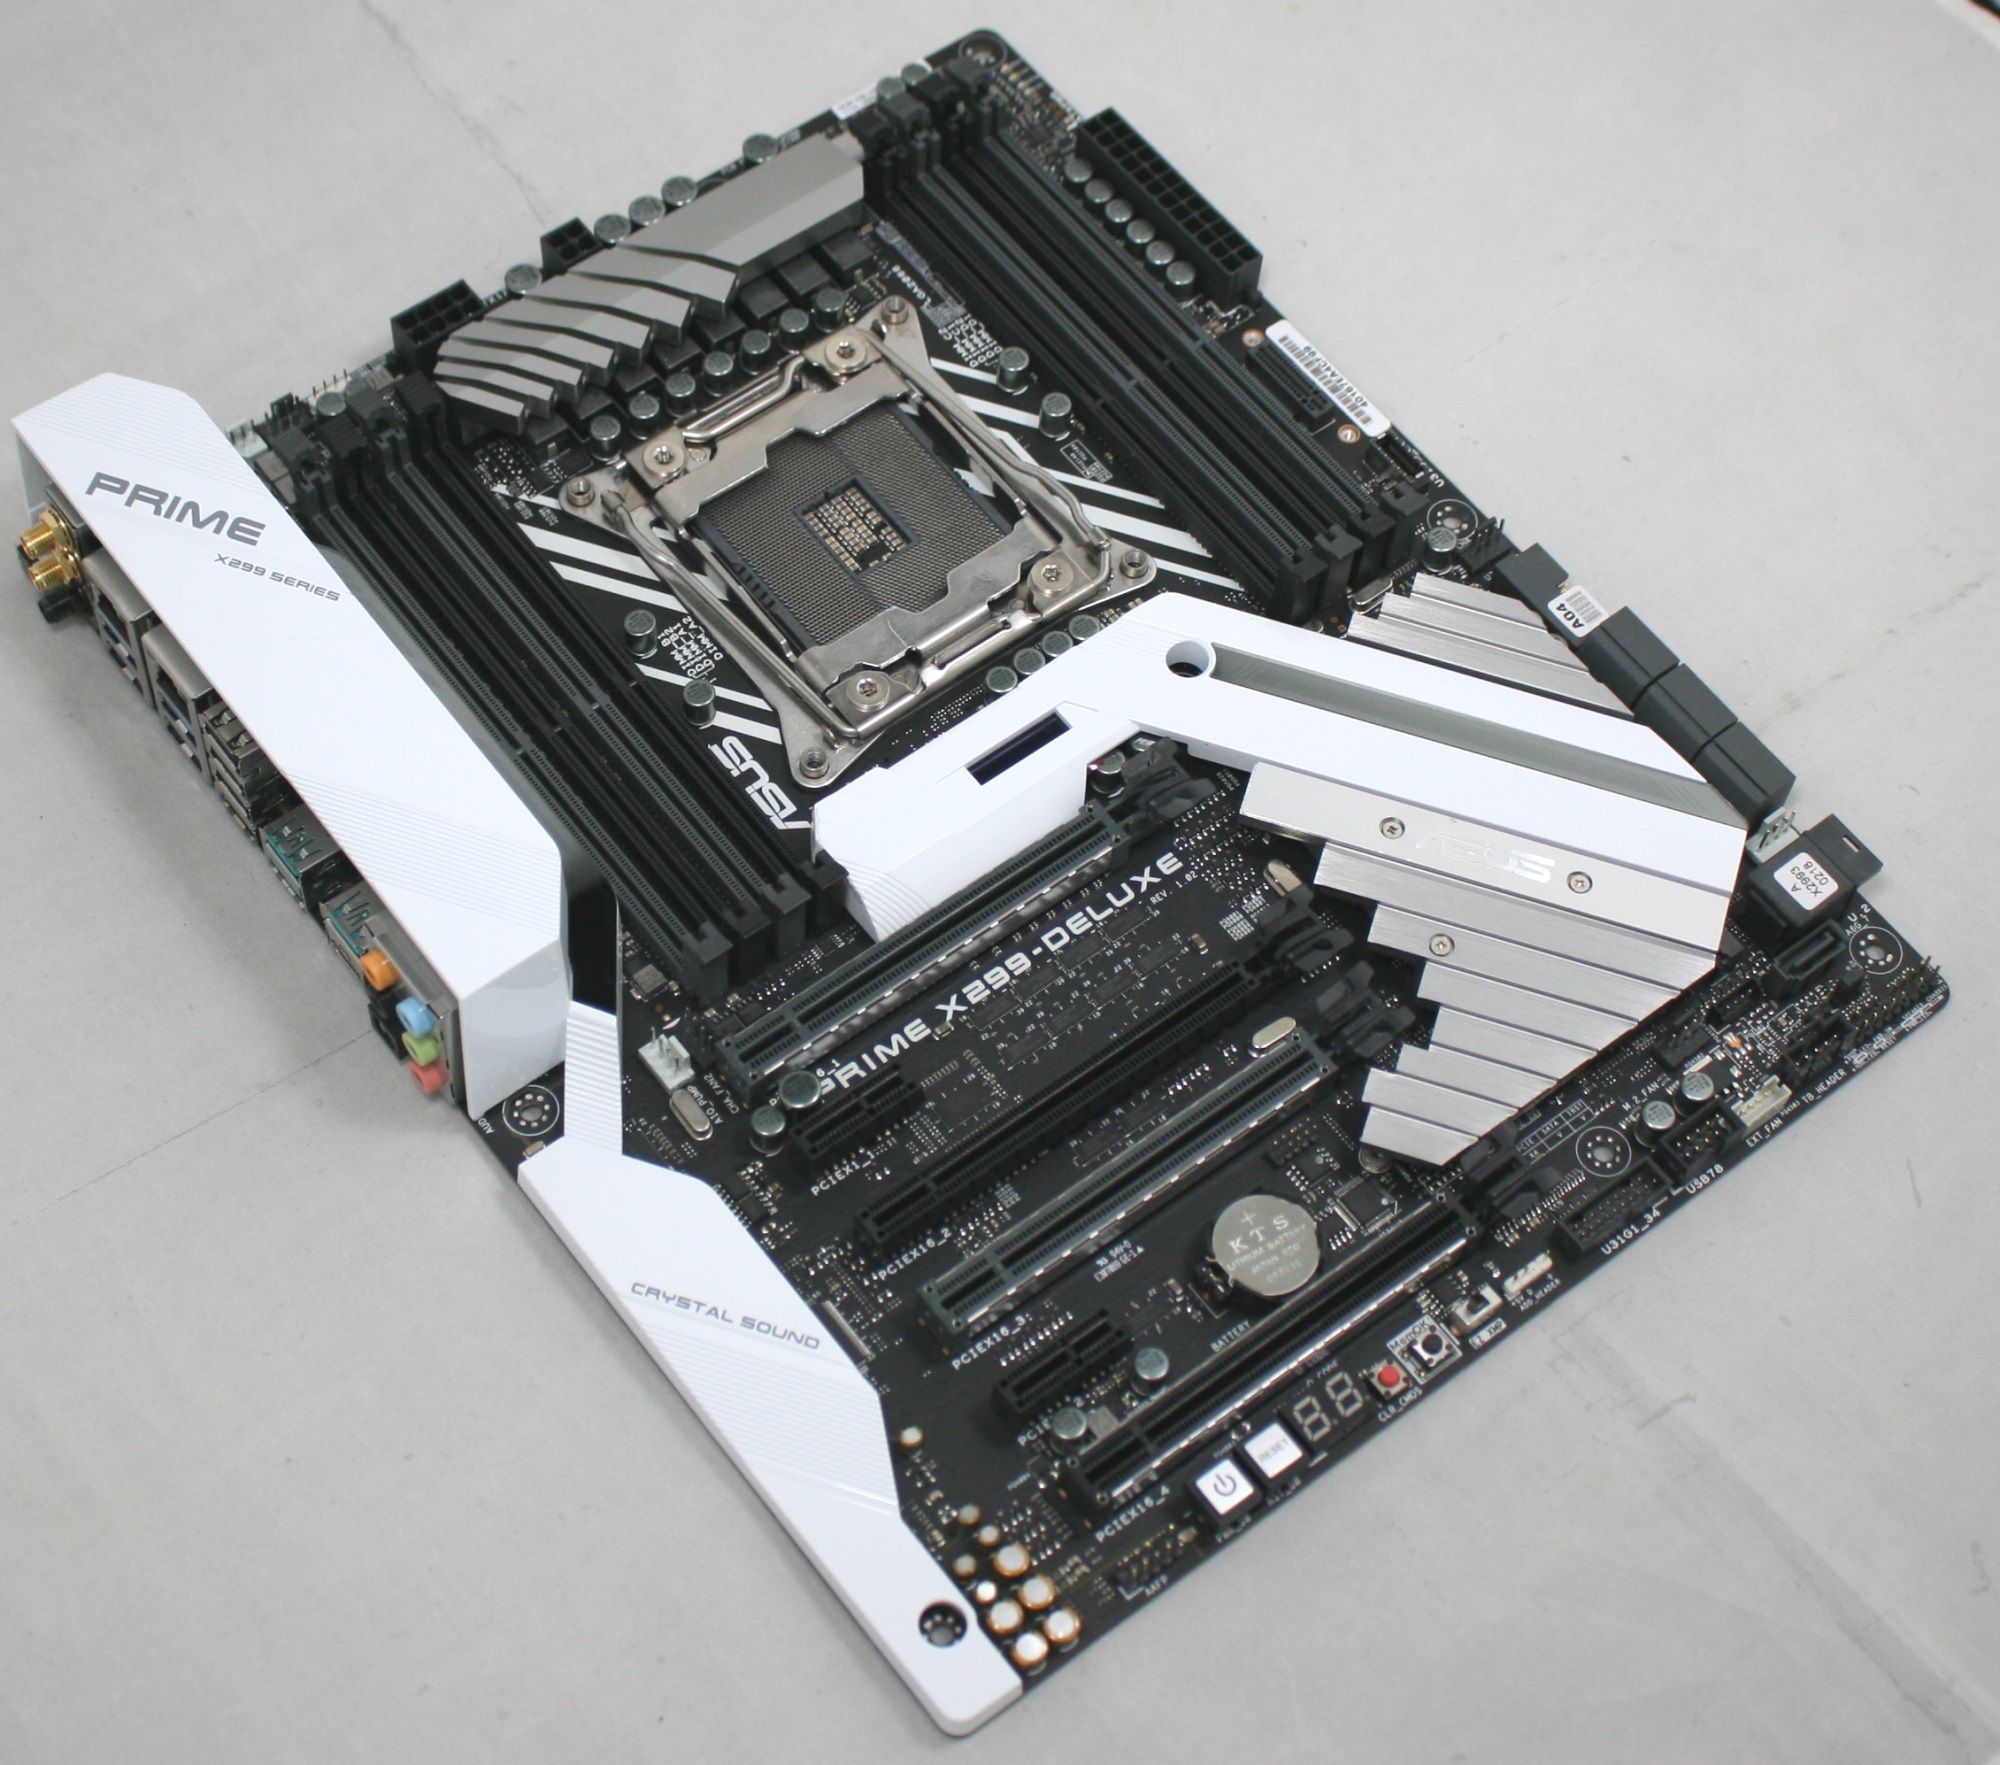 Visual Inspection The Asus Prime X299 Deluxe Motherboard Review Power Connectors Of Front Panel Connector For Your Reference There Are A Total Seven Fan Headers On Board With Support Two High Water Cooling Pumps First Cpu Located At